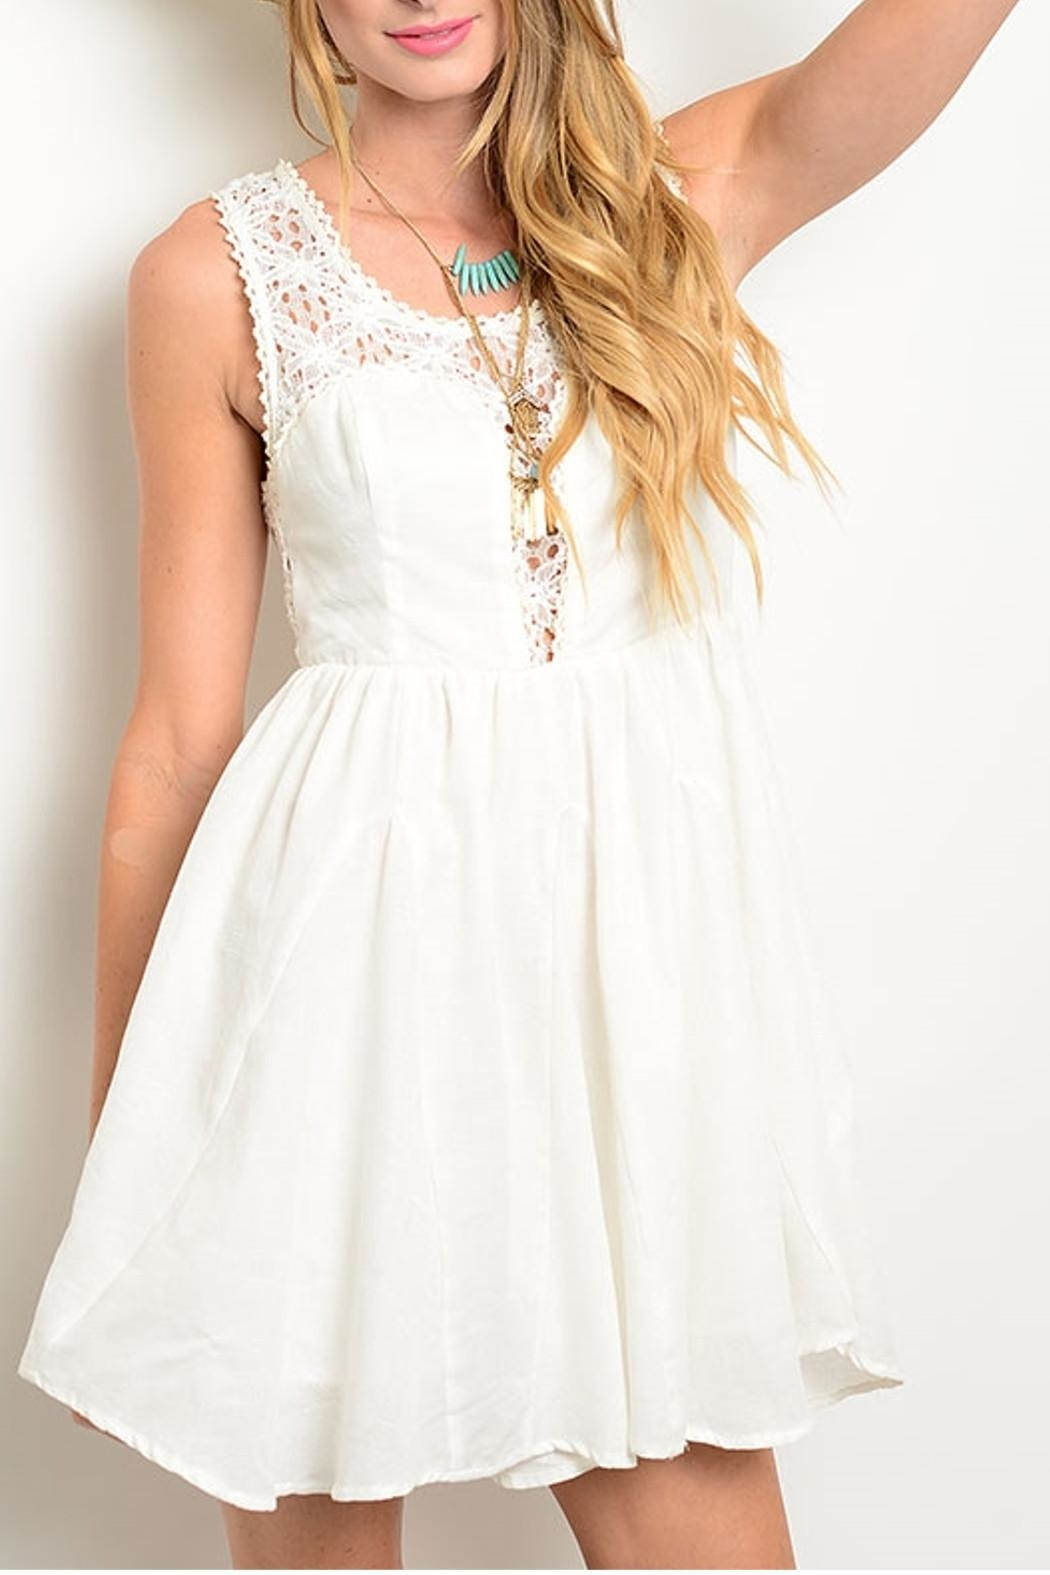 Ark & Co. Crochet Flare White Dress - Front Cropped Image